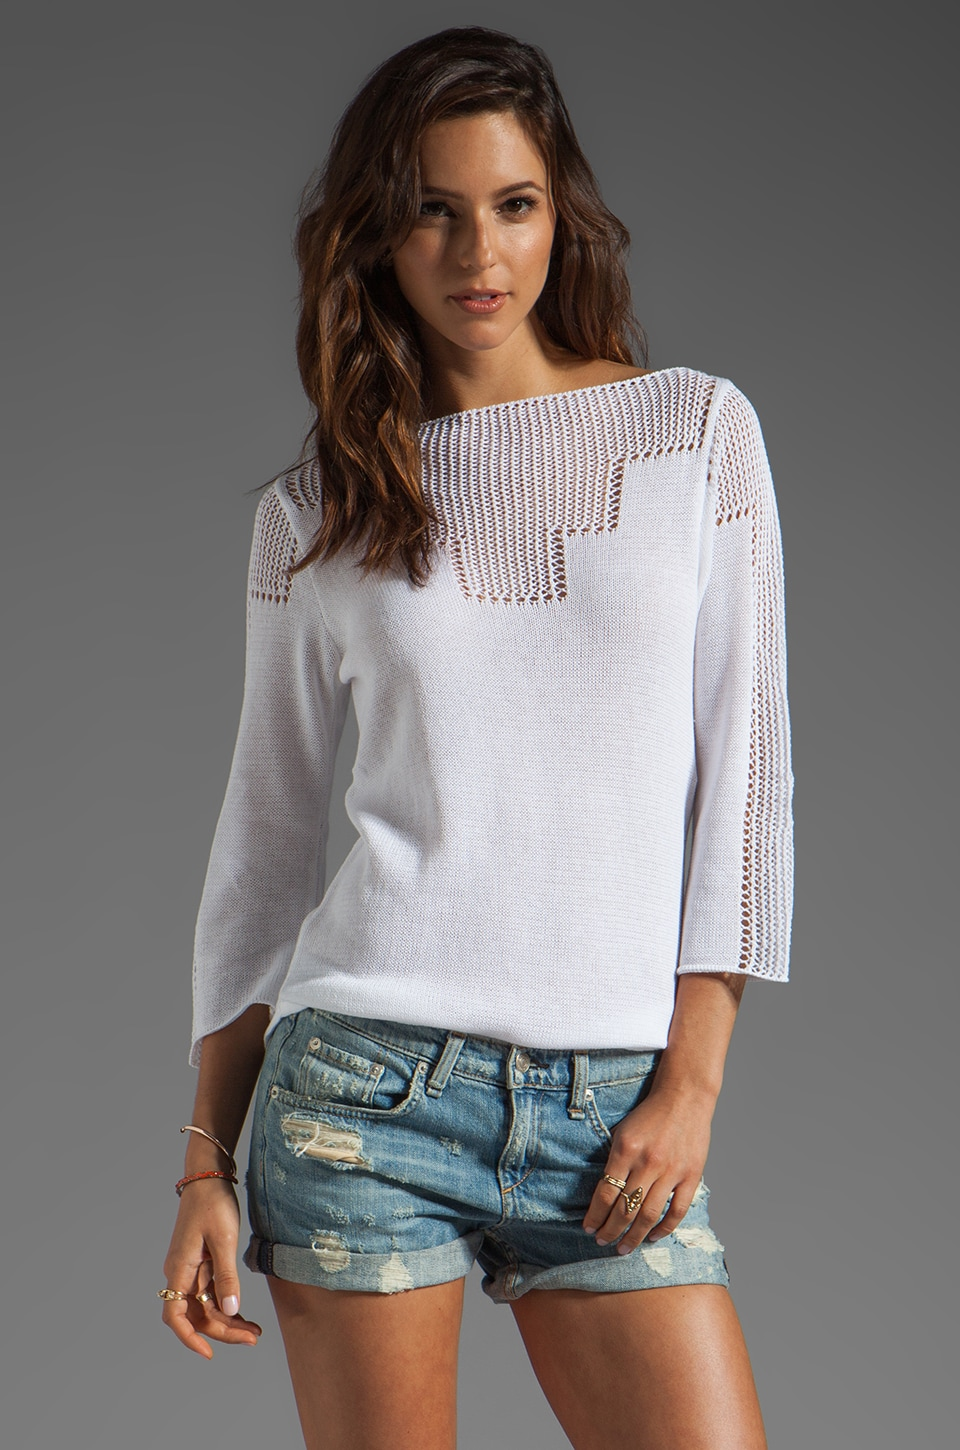 Goddis Freedom Pullover in Lace